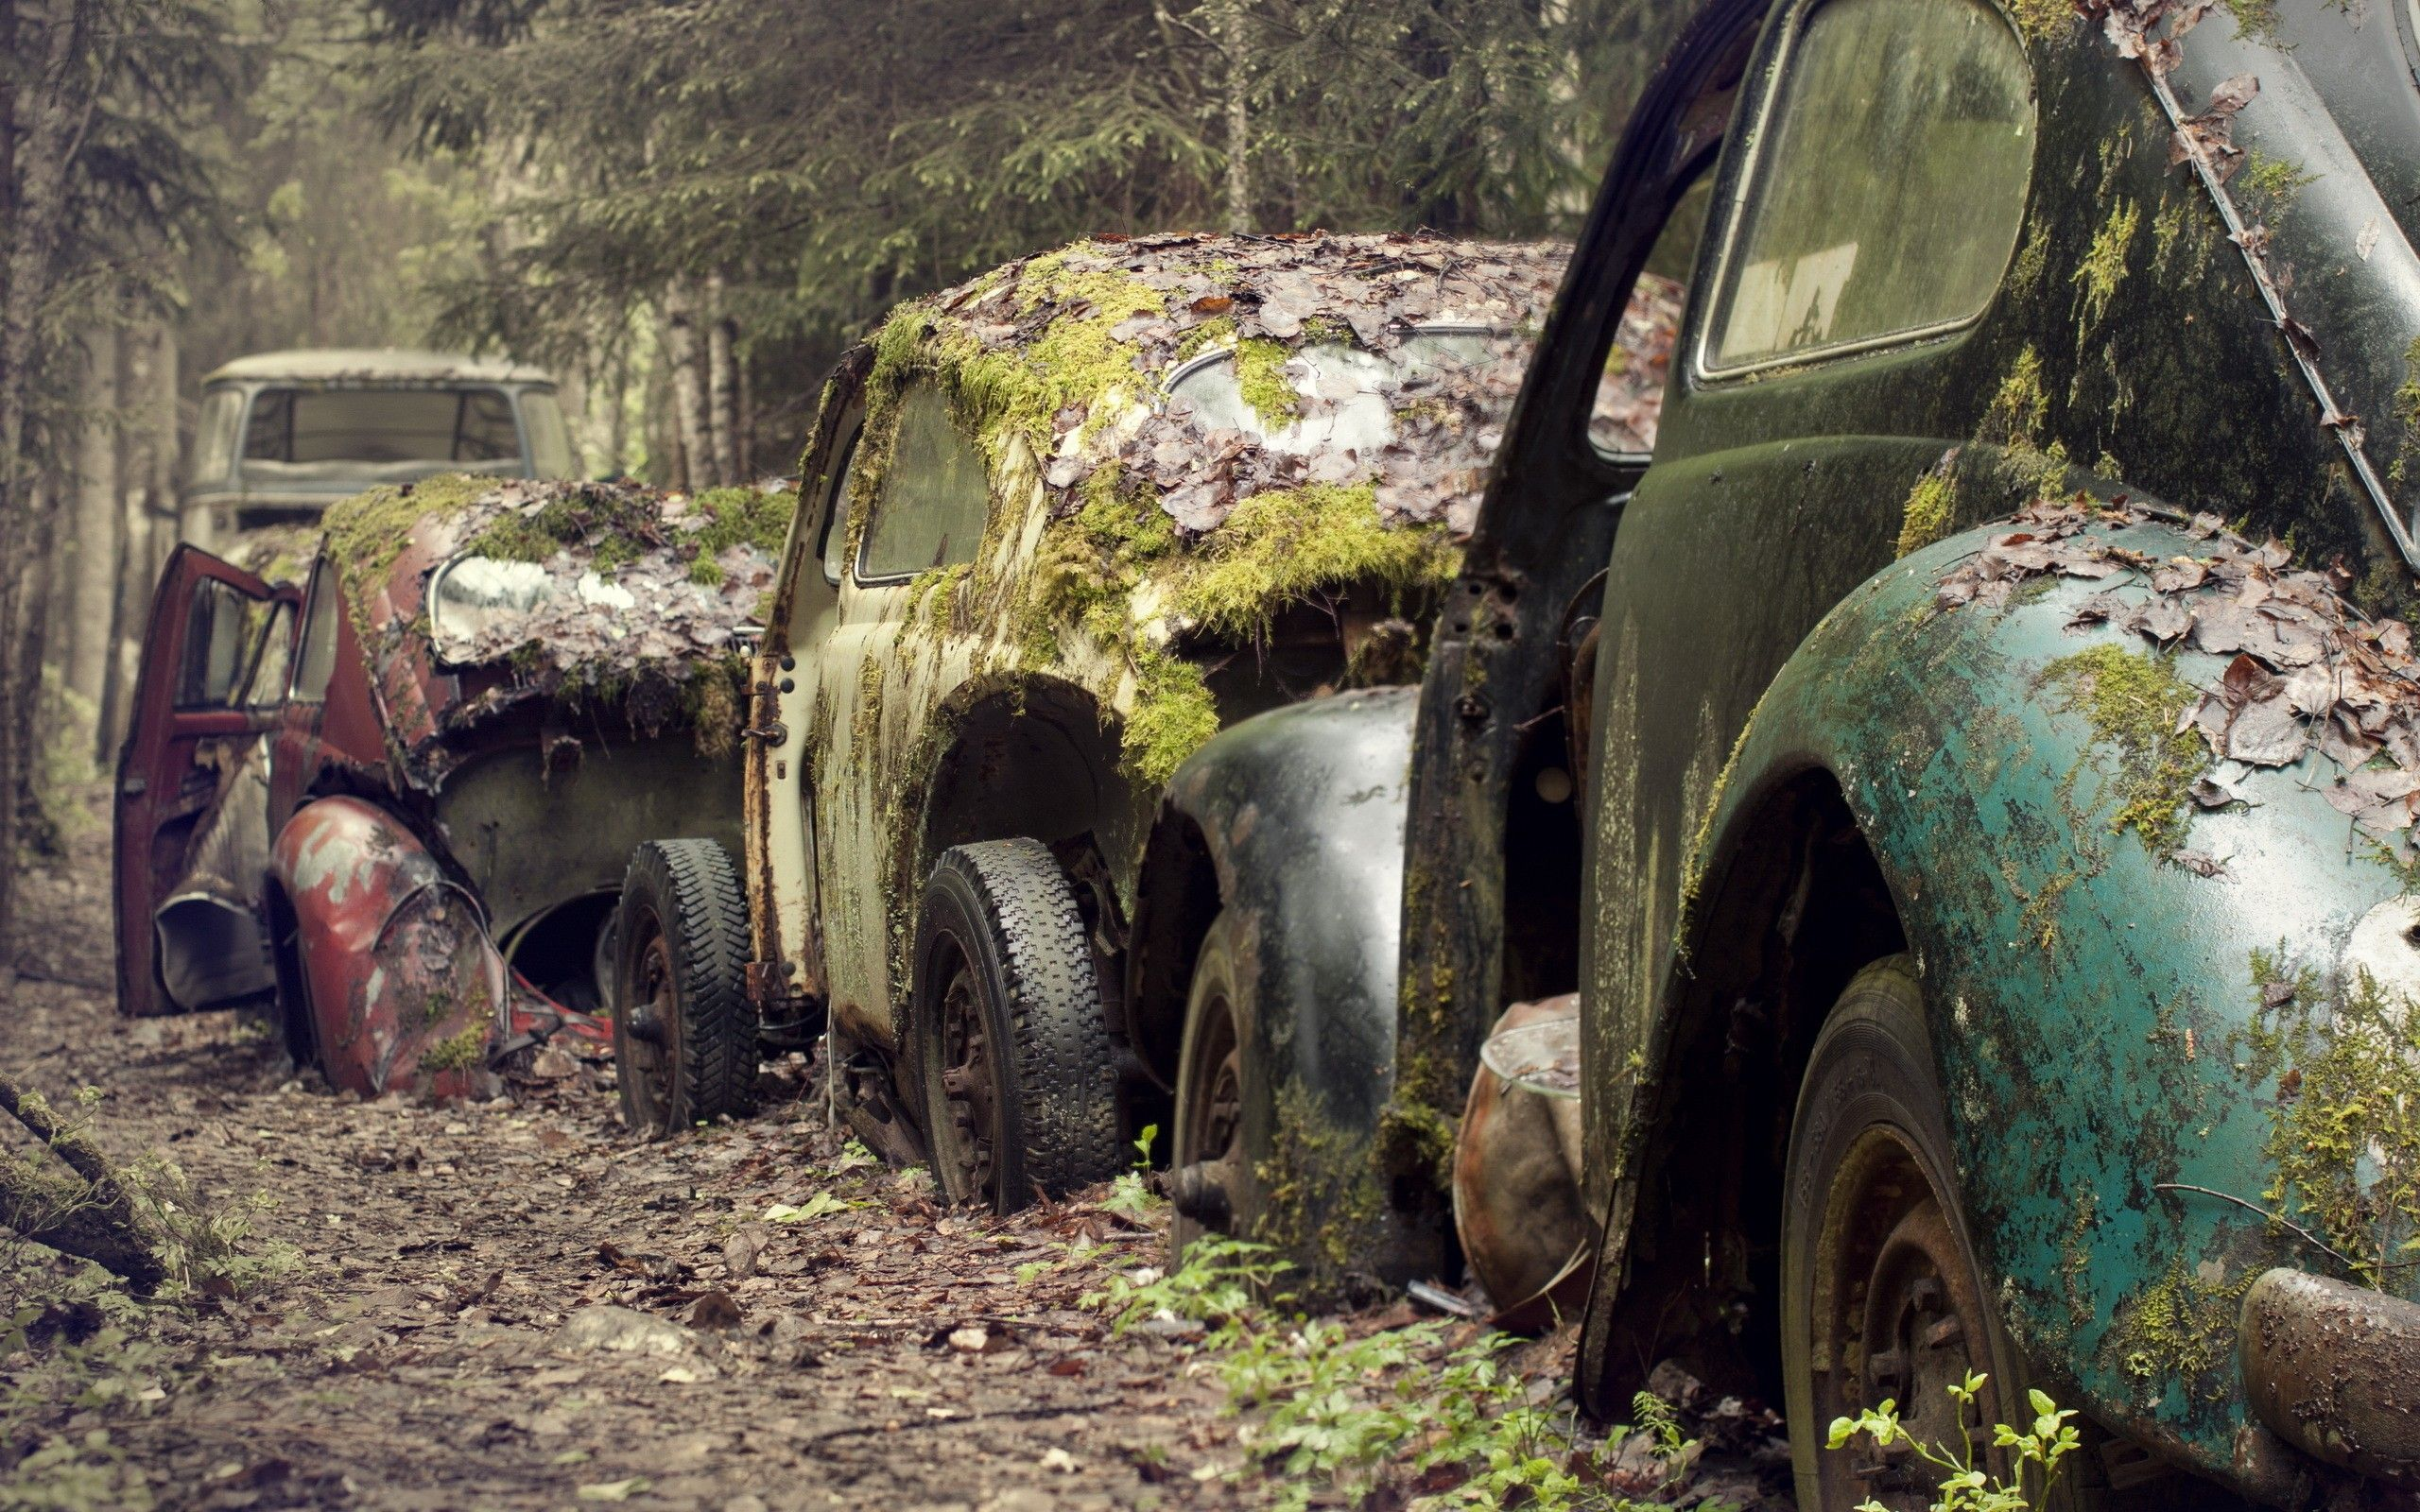 Vintage Old Cars Photography Moss Rusted Volkswagen Beetle Vintage